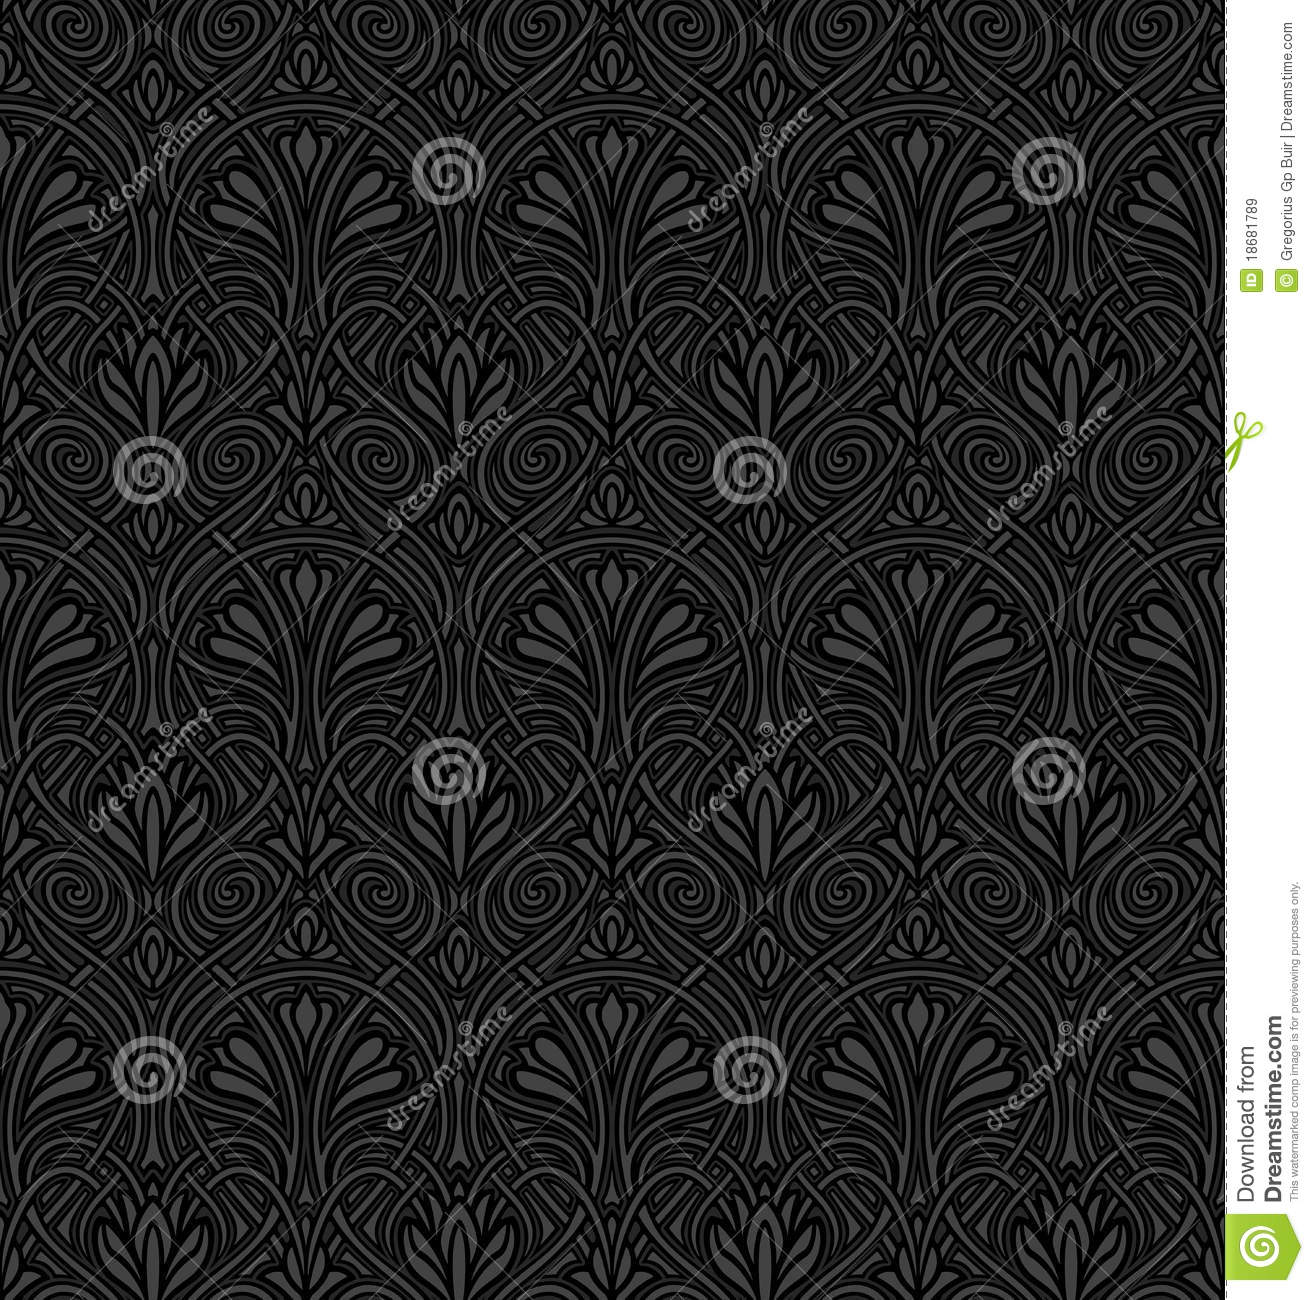 Victorian Wallpaper Black Seamless Art Nouveau Pattern Stock Vector Image 18681789